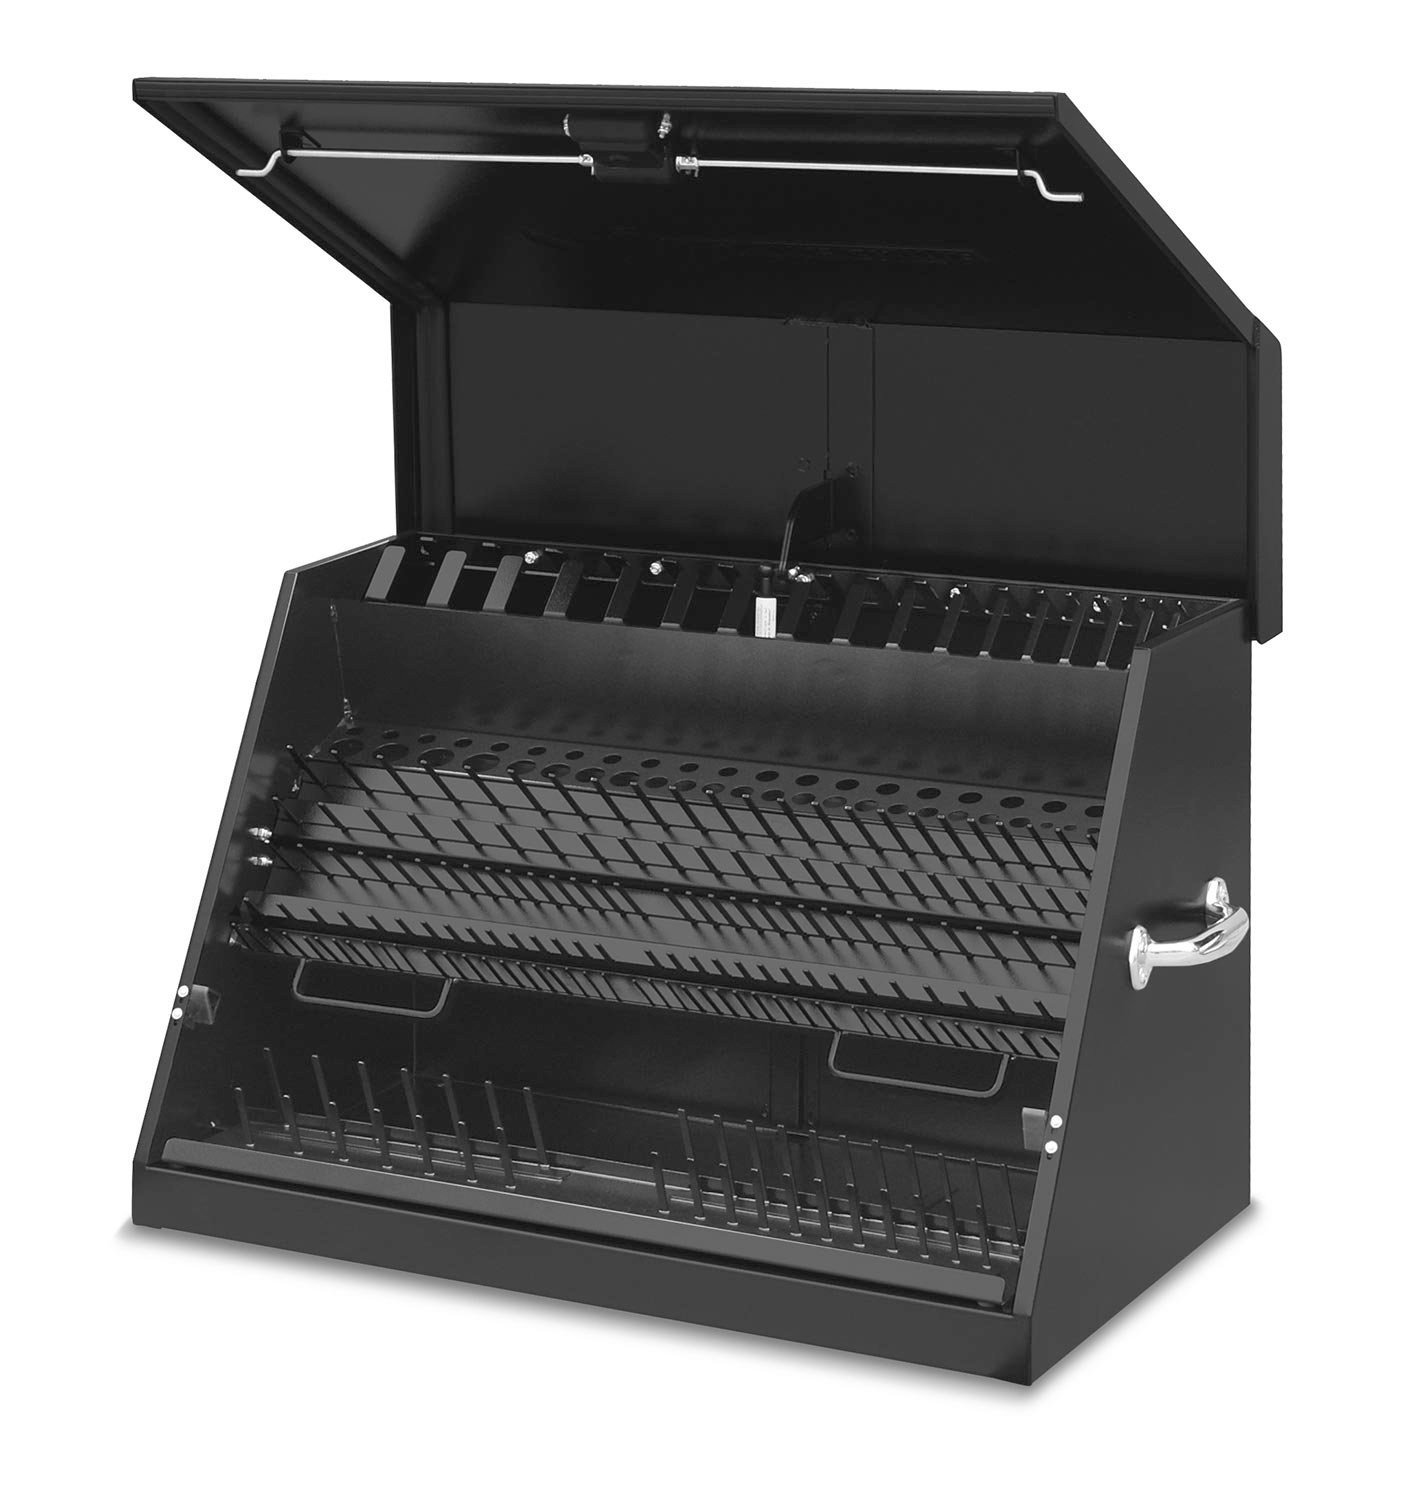 Montezuma – LA400B – 30-Inch Portable TRIANGLE Toolbox – Multi-Tier Design – 16-Gauge Construction – SAE and Metric Tool Chest – Weather-Resistant Toolbox – Lock and Latching System